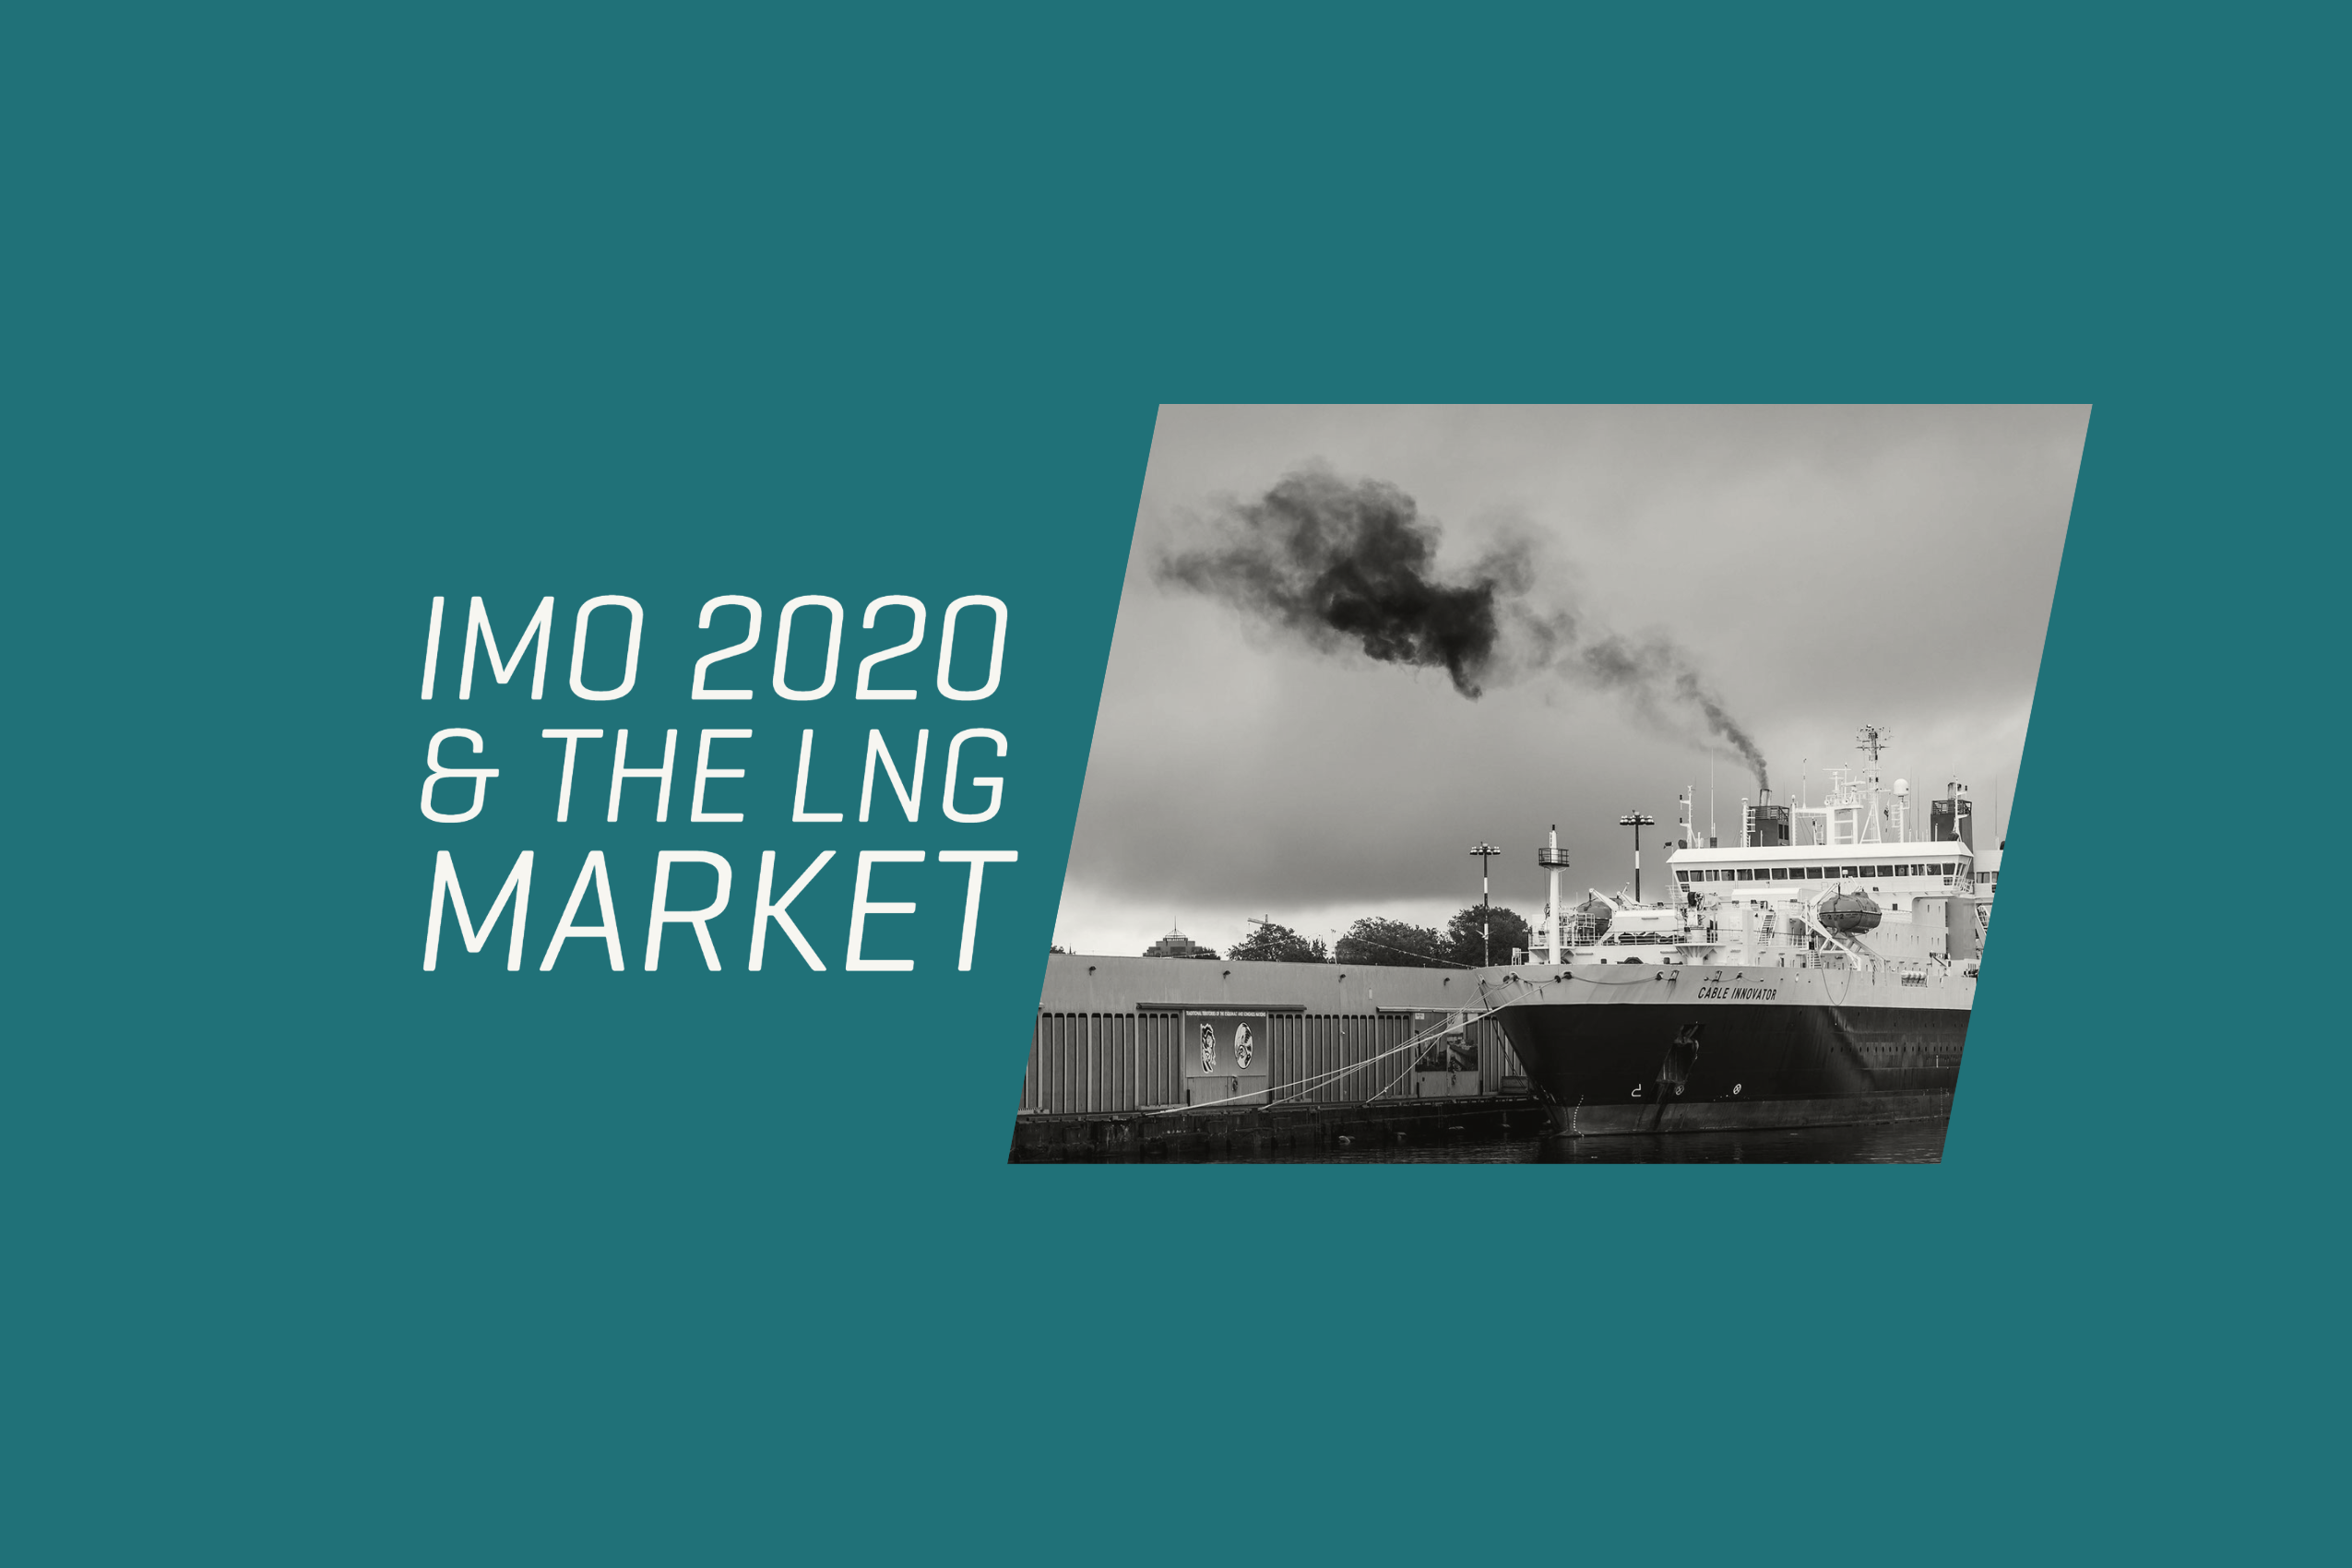 How do IMO 2020 regulations impact the LNG market?